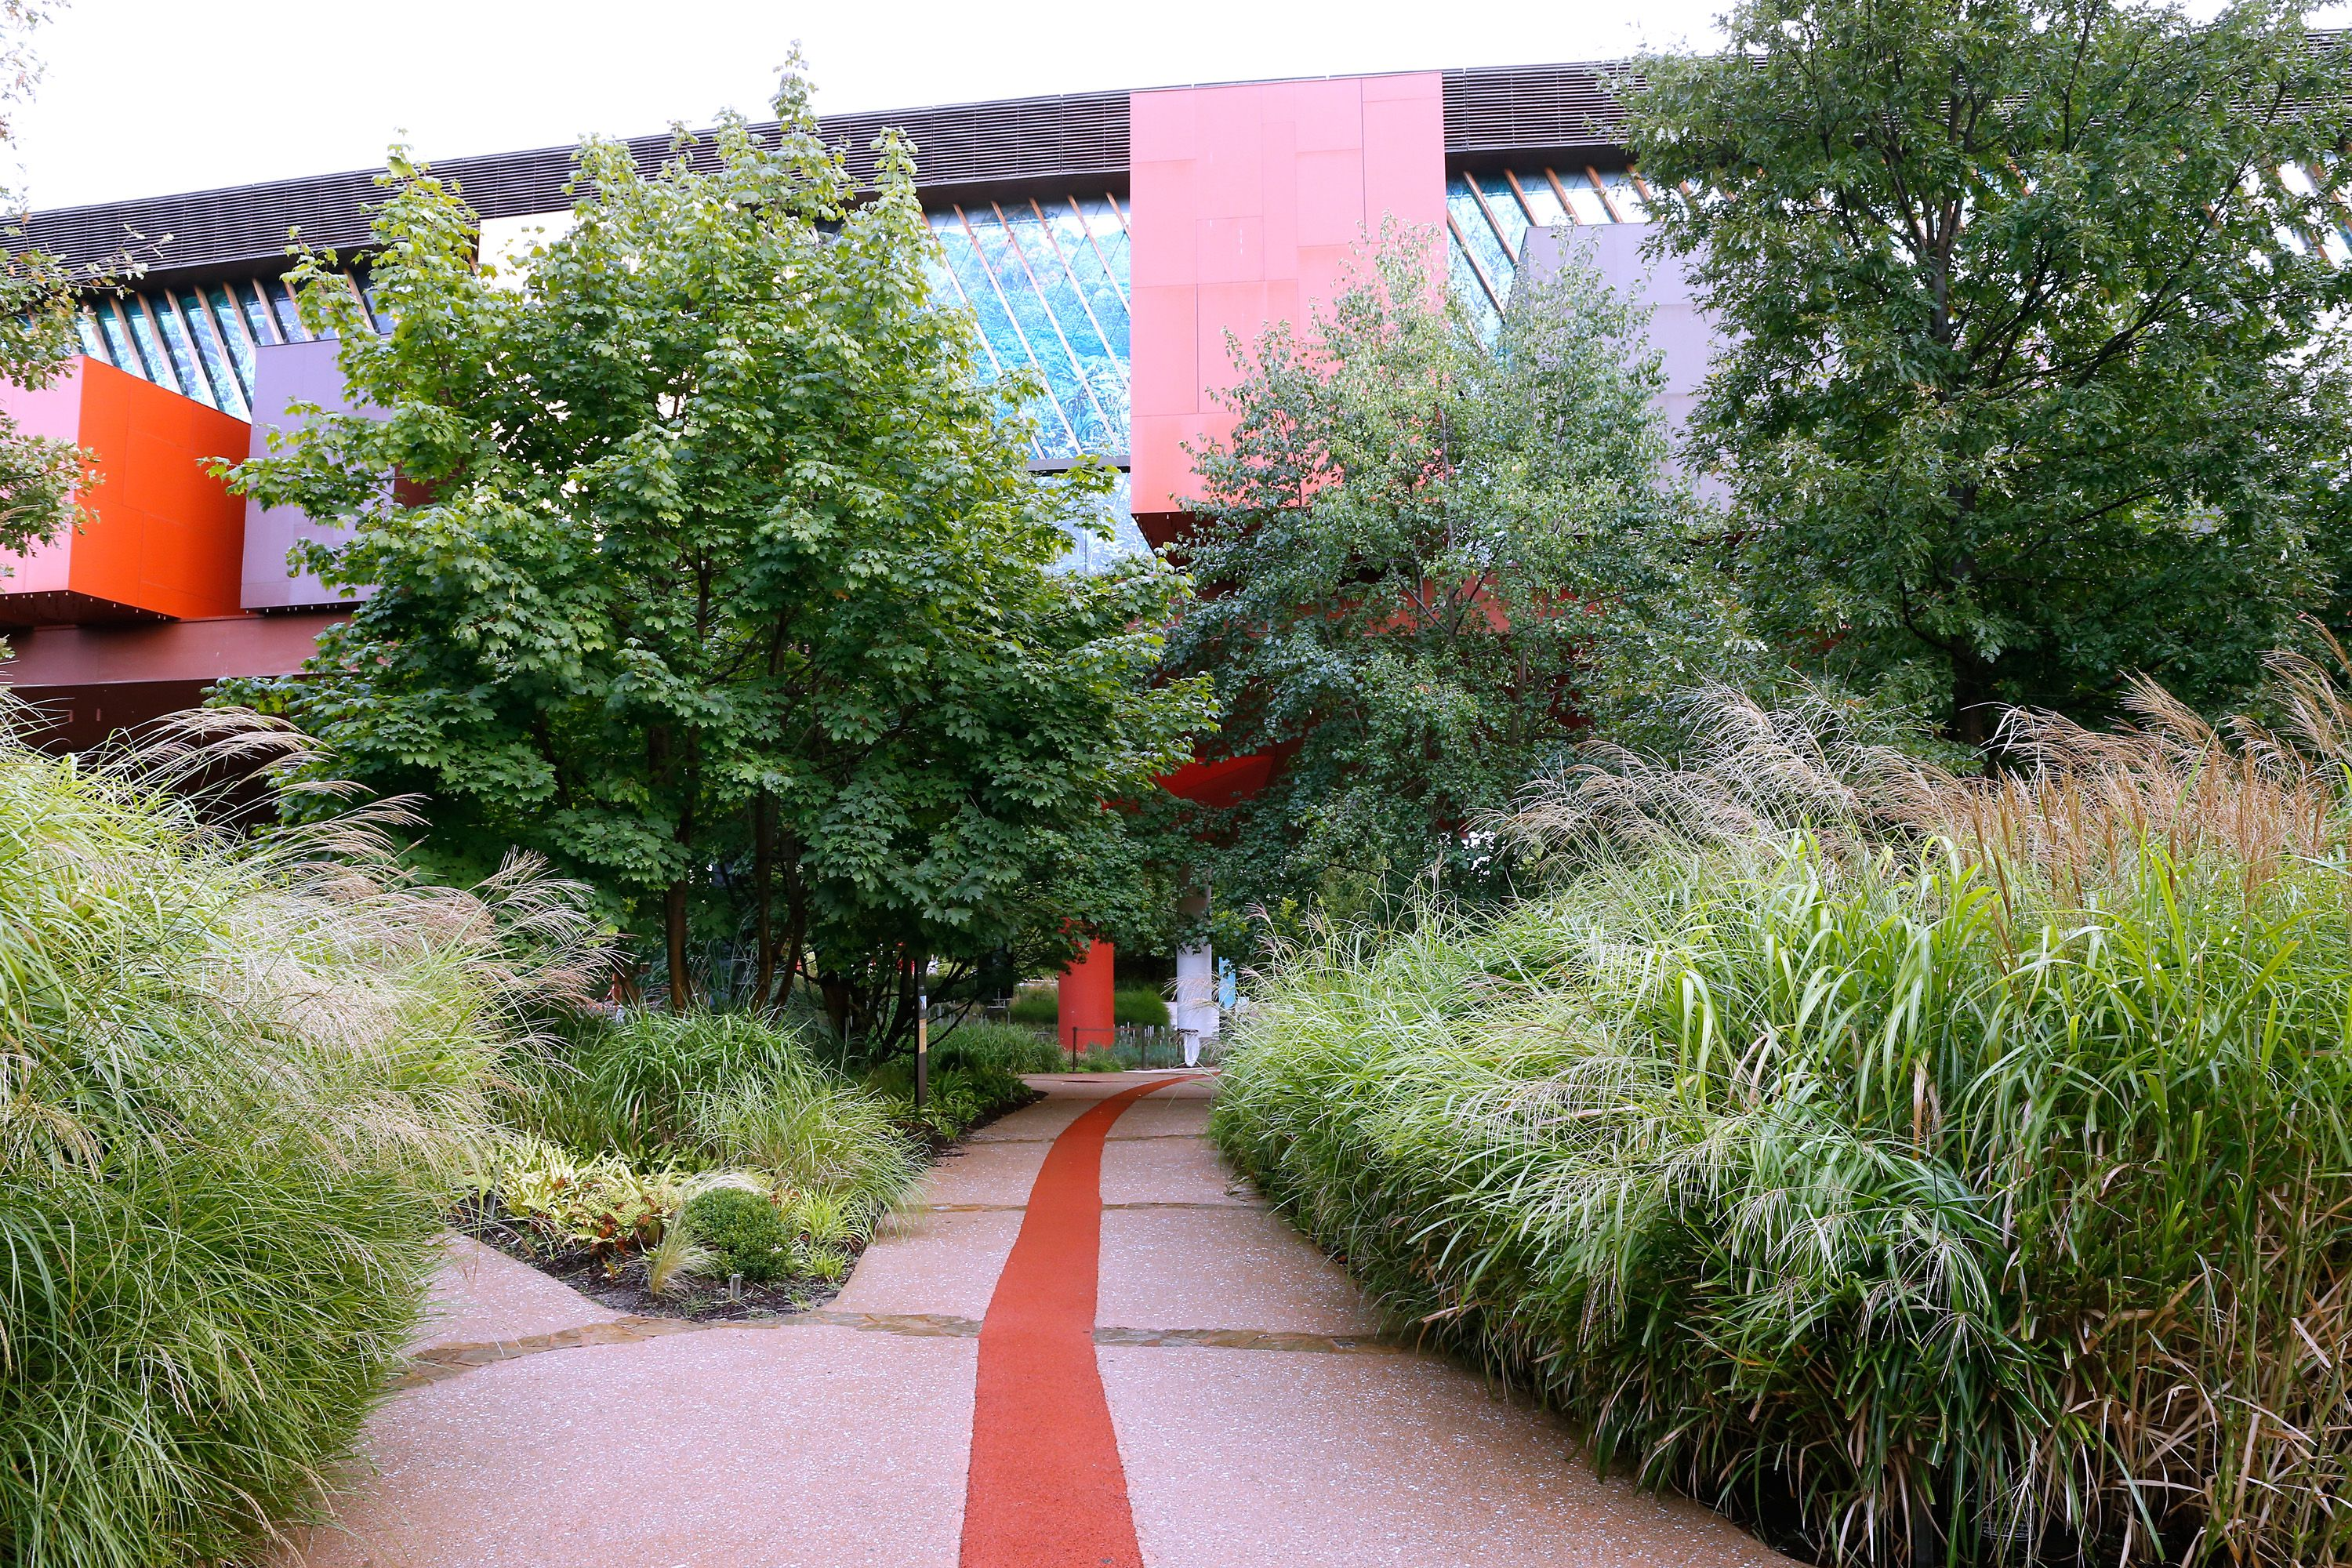 bright reds and yellow panels mix with glass exterior of building behind lush vegetation, a wide red line down a path toward the building